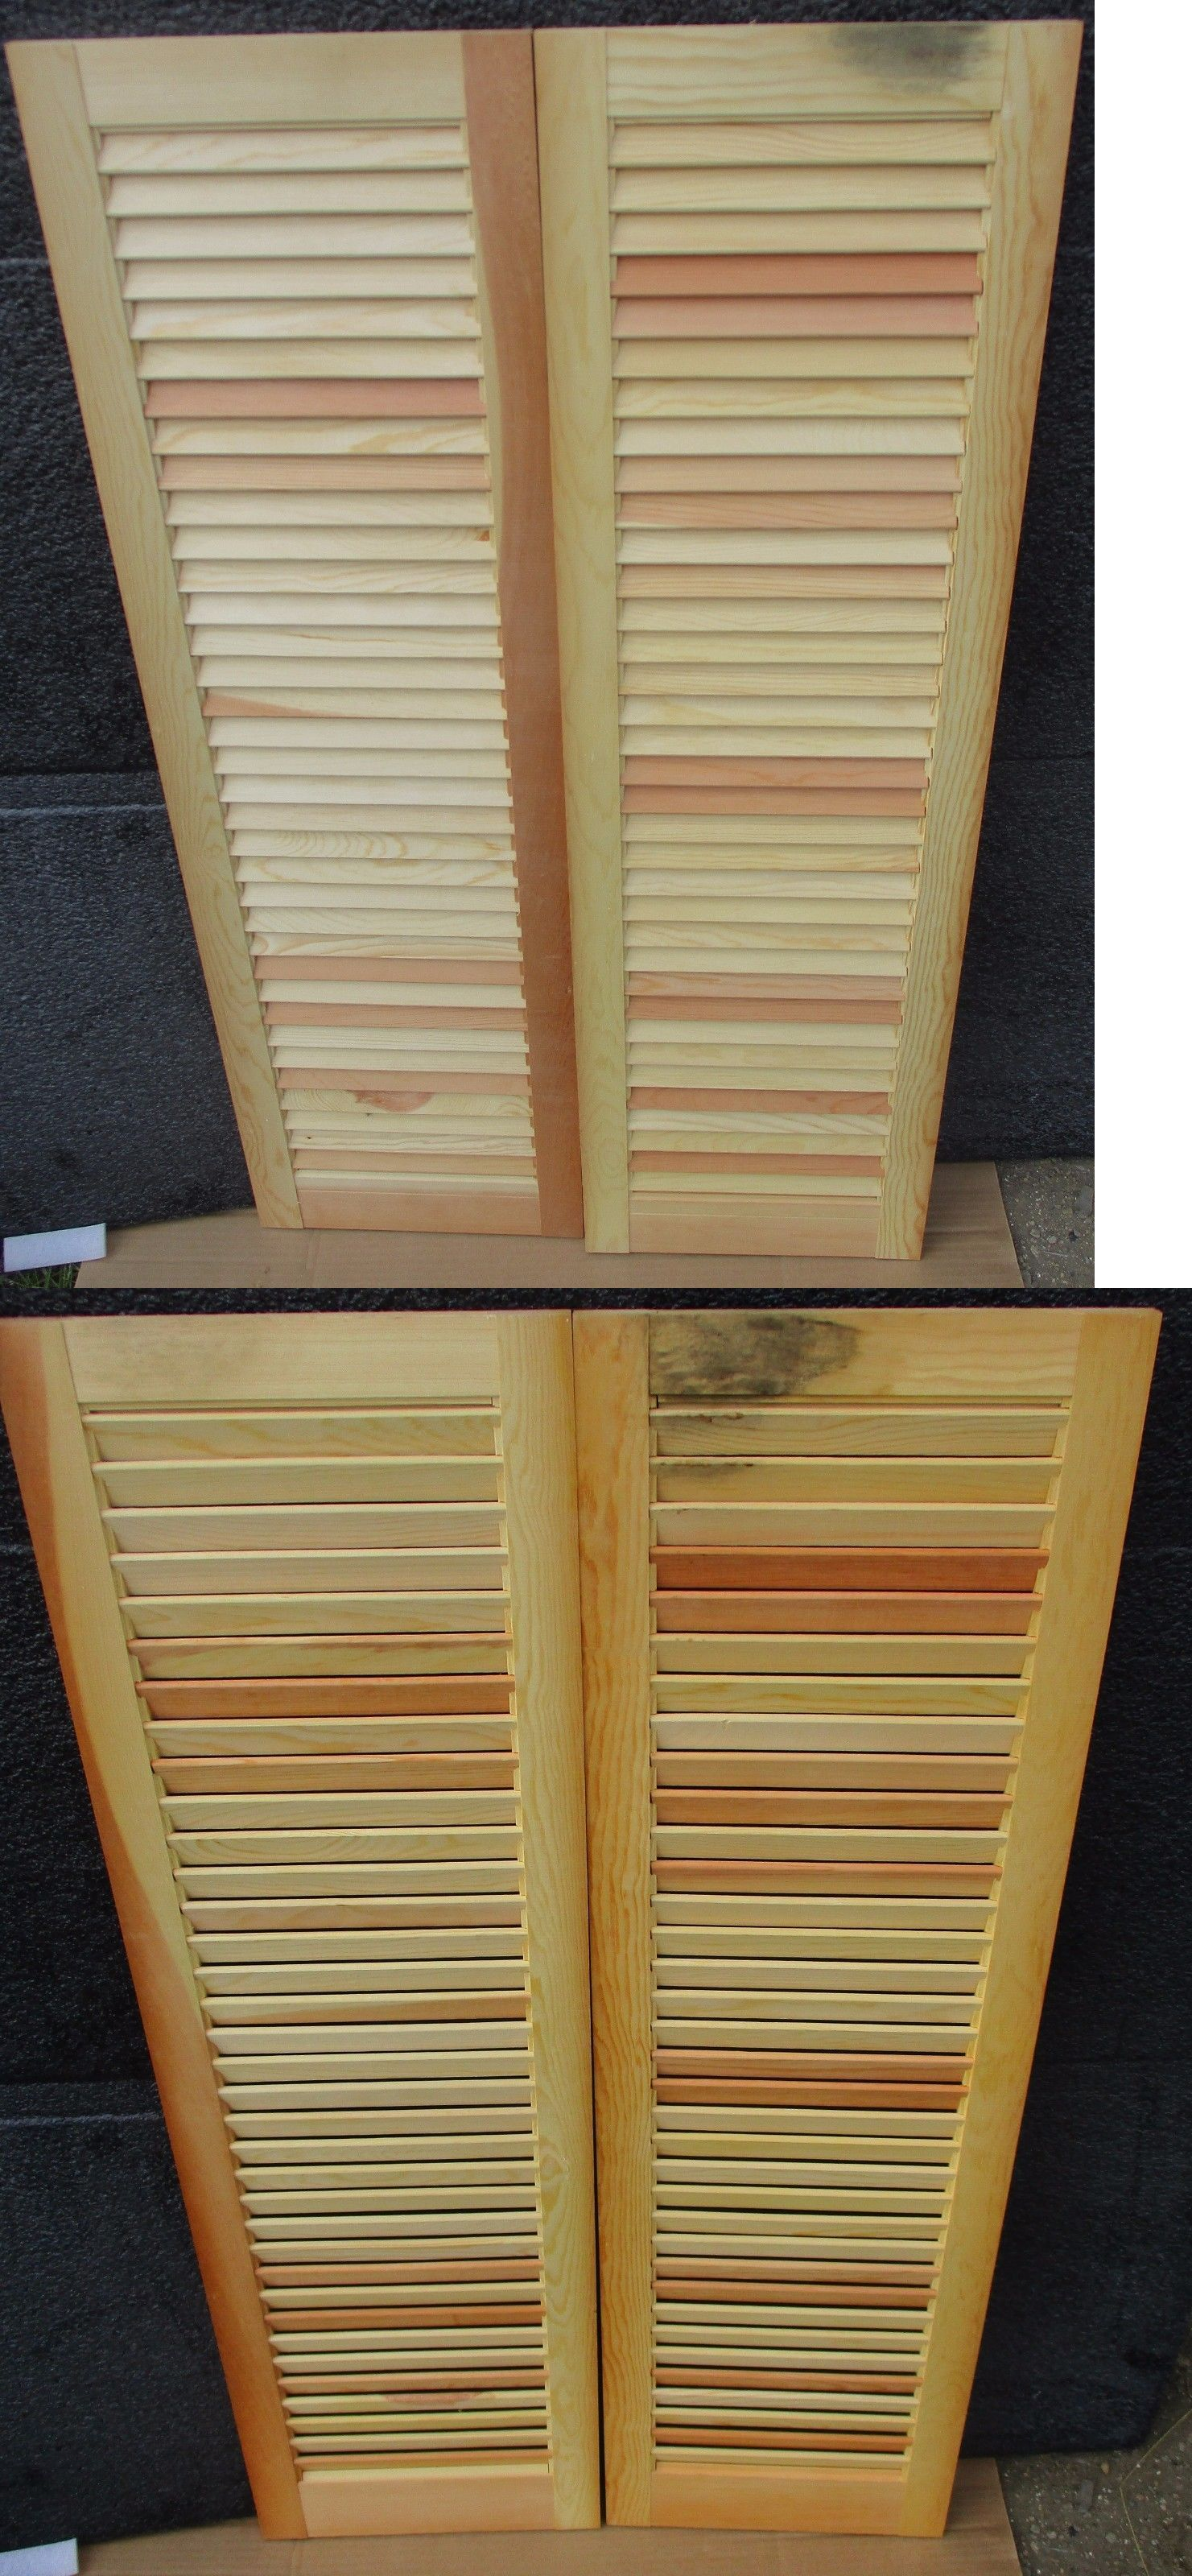 Shutters 66799 Set Vintage Fixed Louver Interior Window Shutter